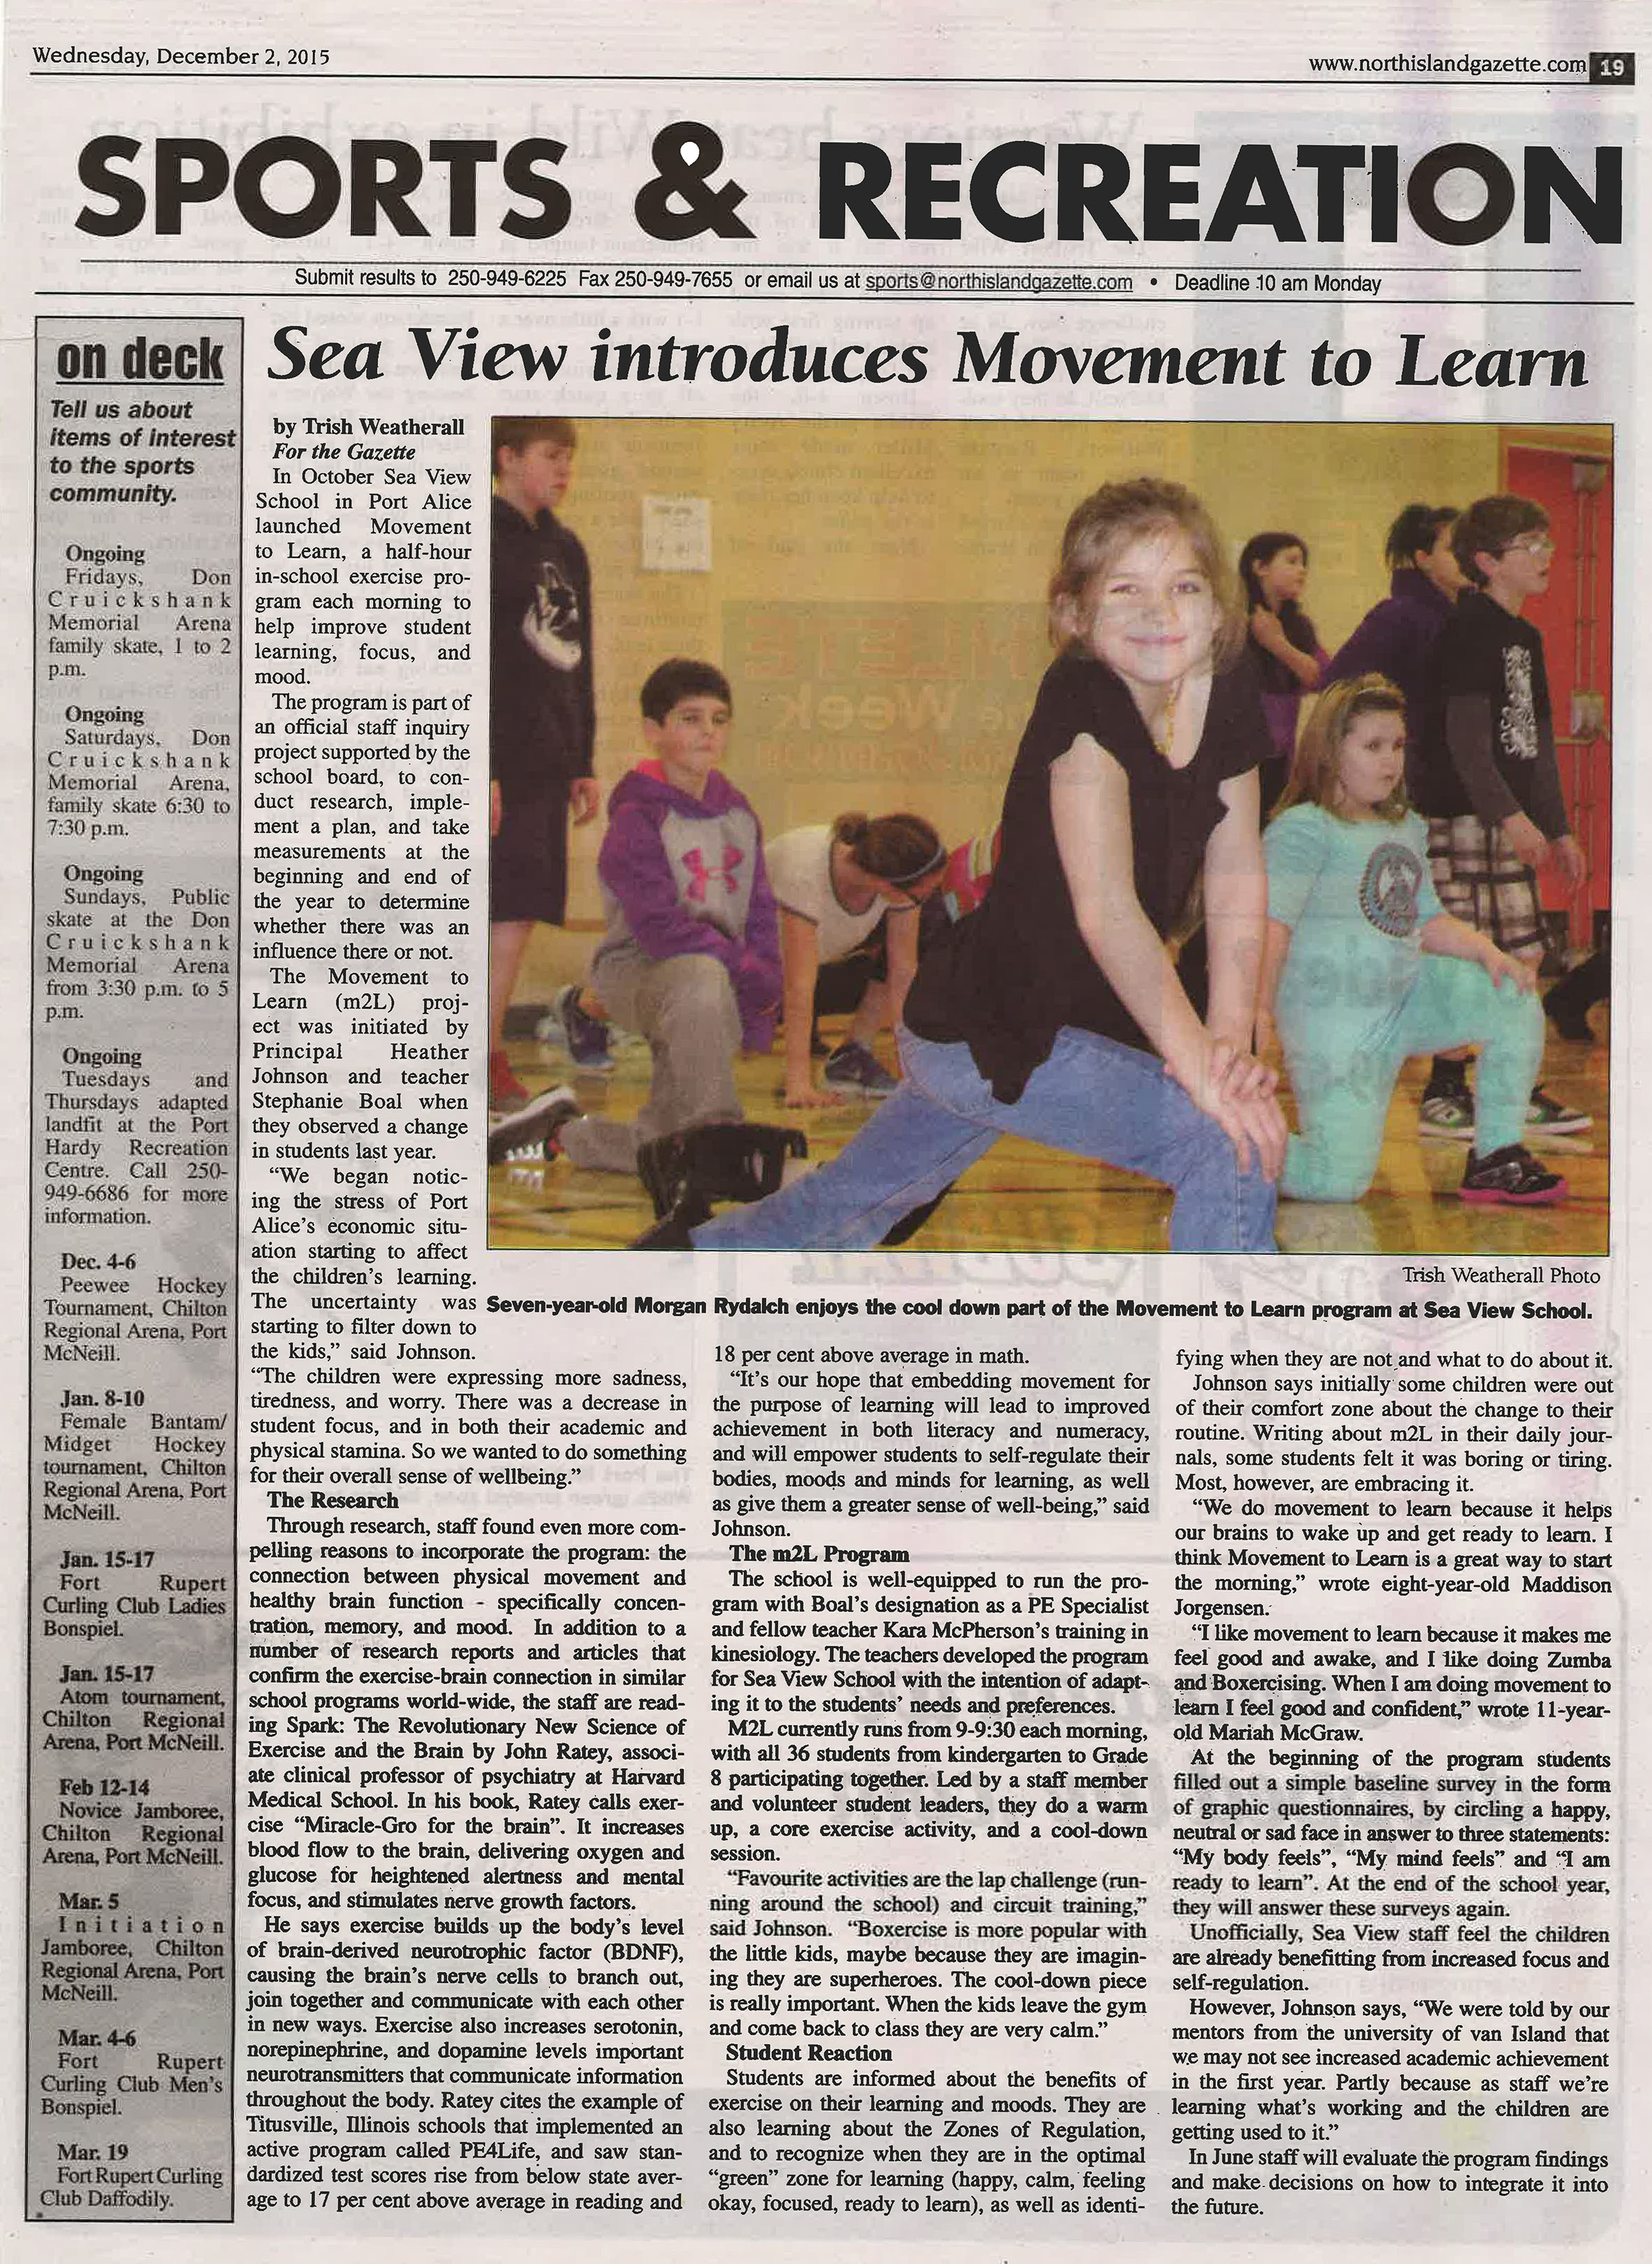 NI Gazette - Sea View Movement to Learn story - 300dpi-Dec 2015